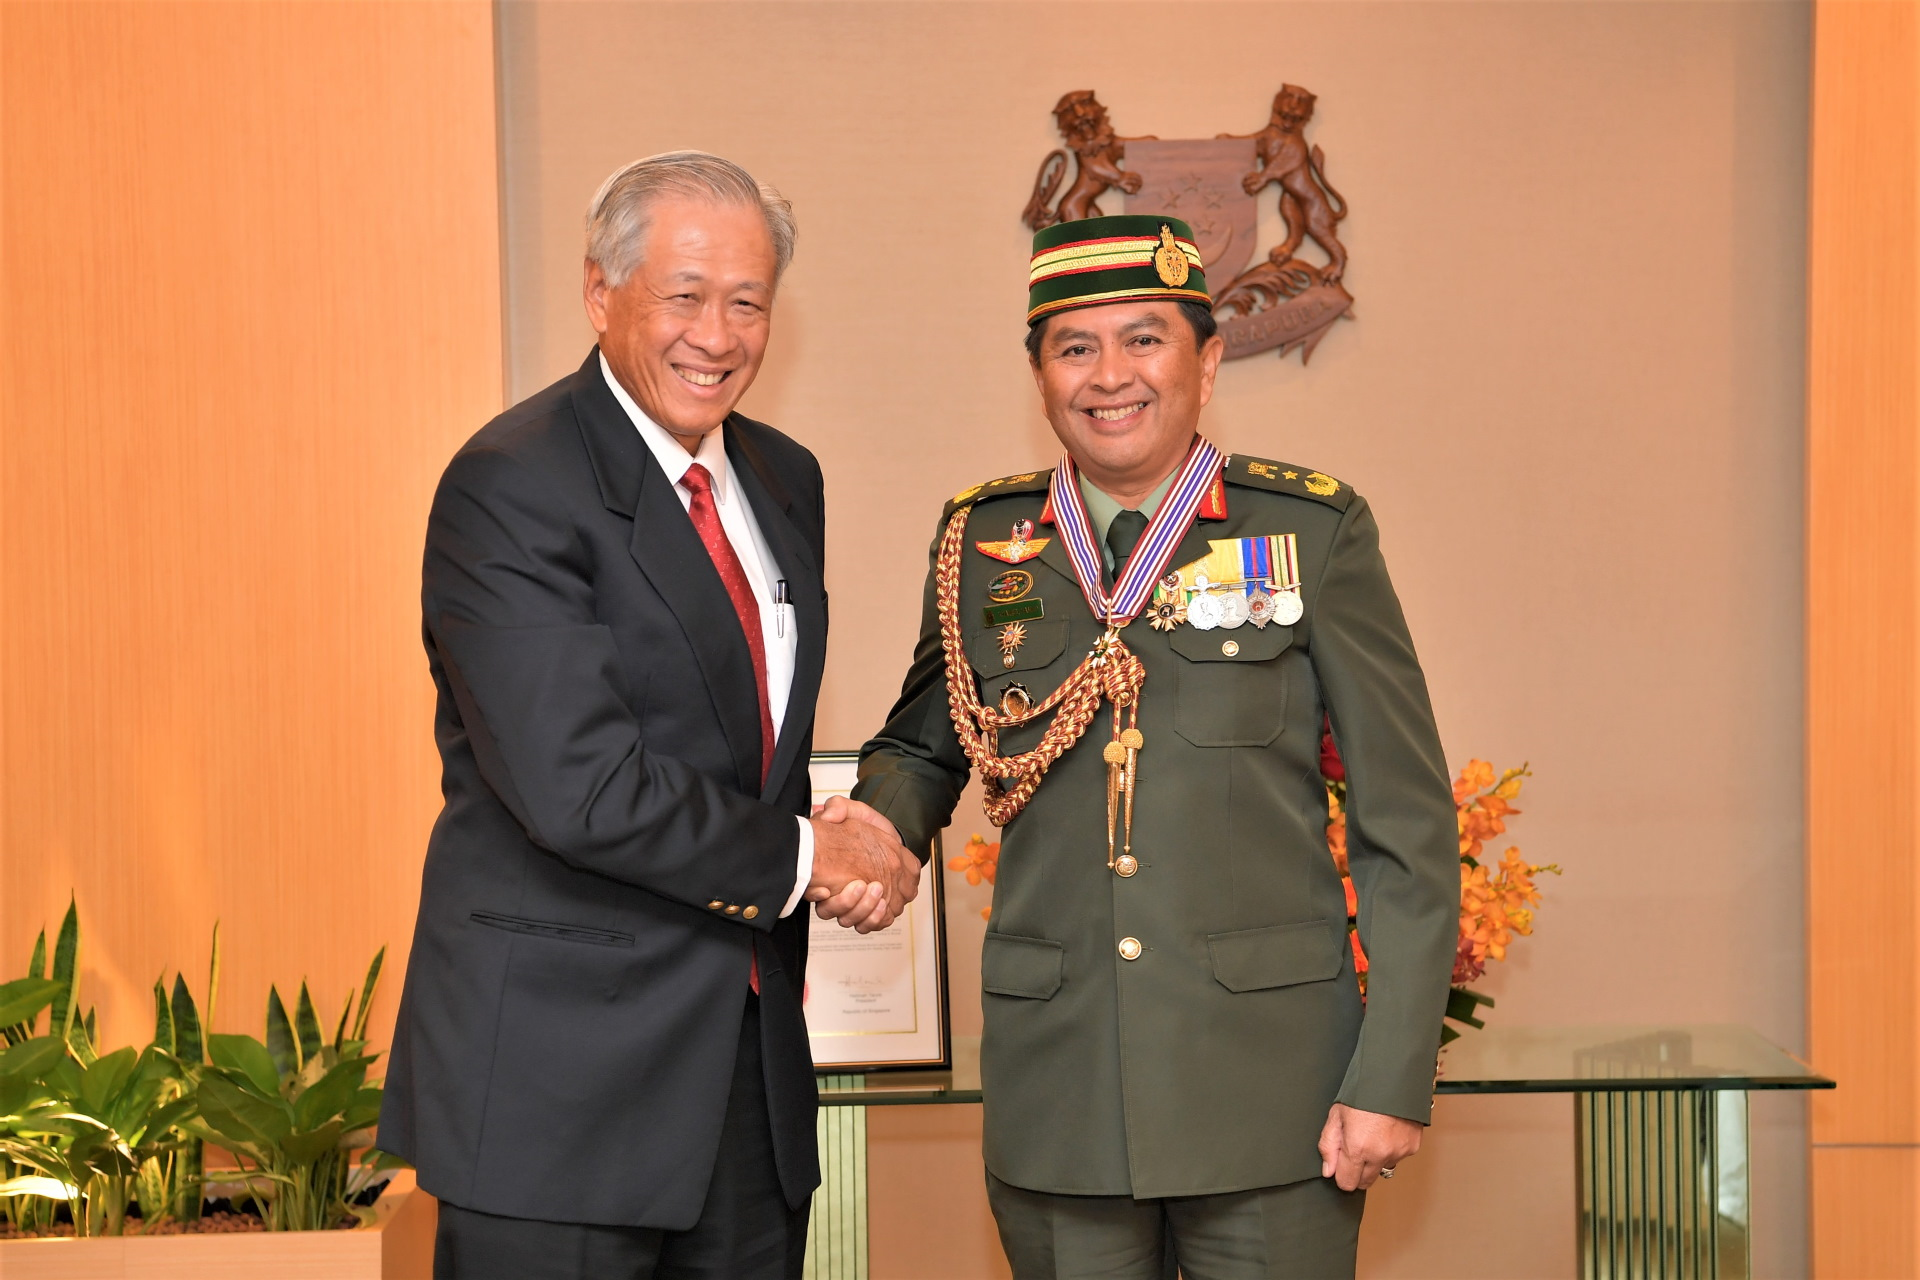 Minister for Defence Dr Ng Eng Hen (left) congratulating Commander of the Royal Brunei Land Forces Brigadier General (BG) Dato Seri Pahlawan Awang Khairul Hamed bin Awang Haji Lampoh (right).